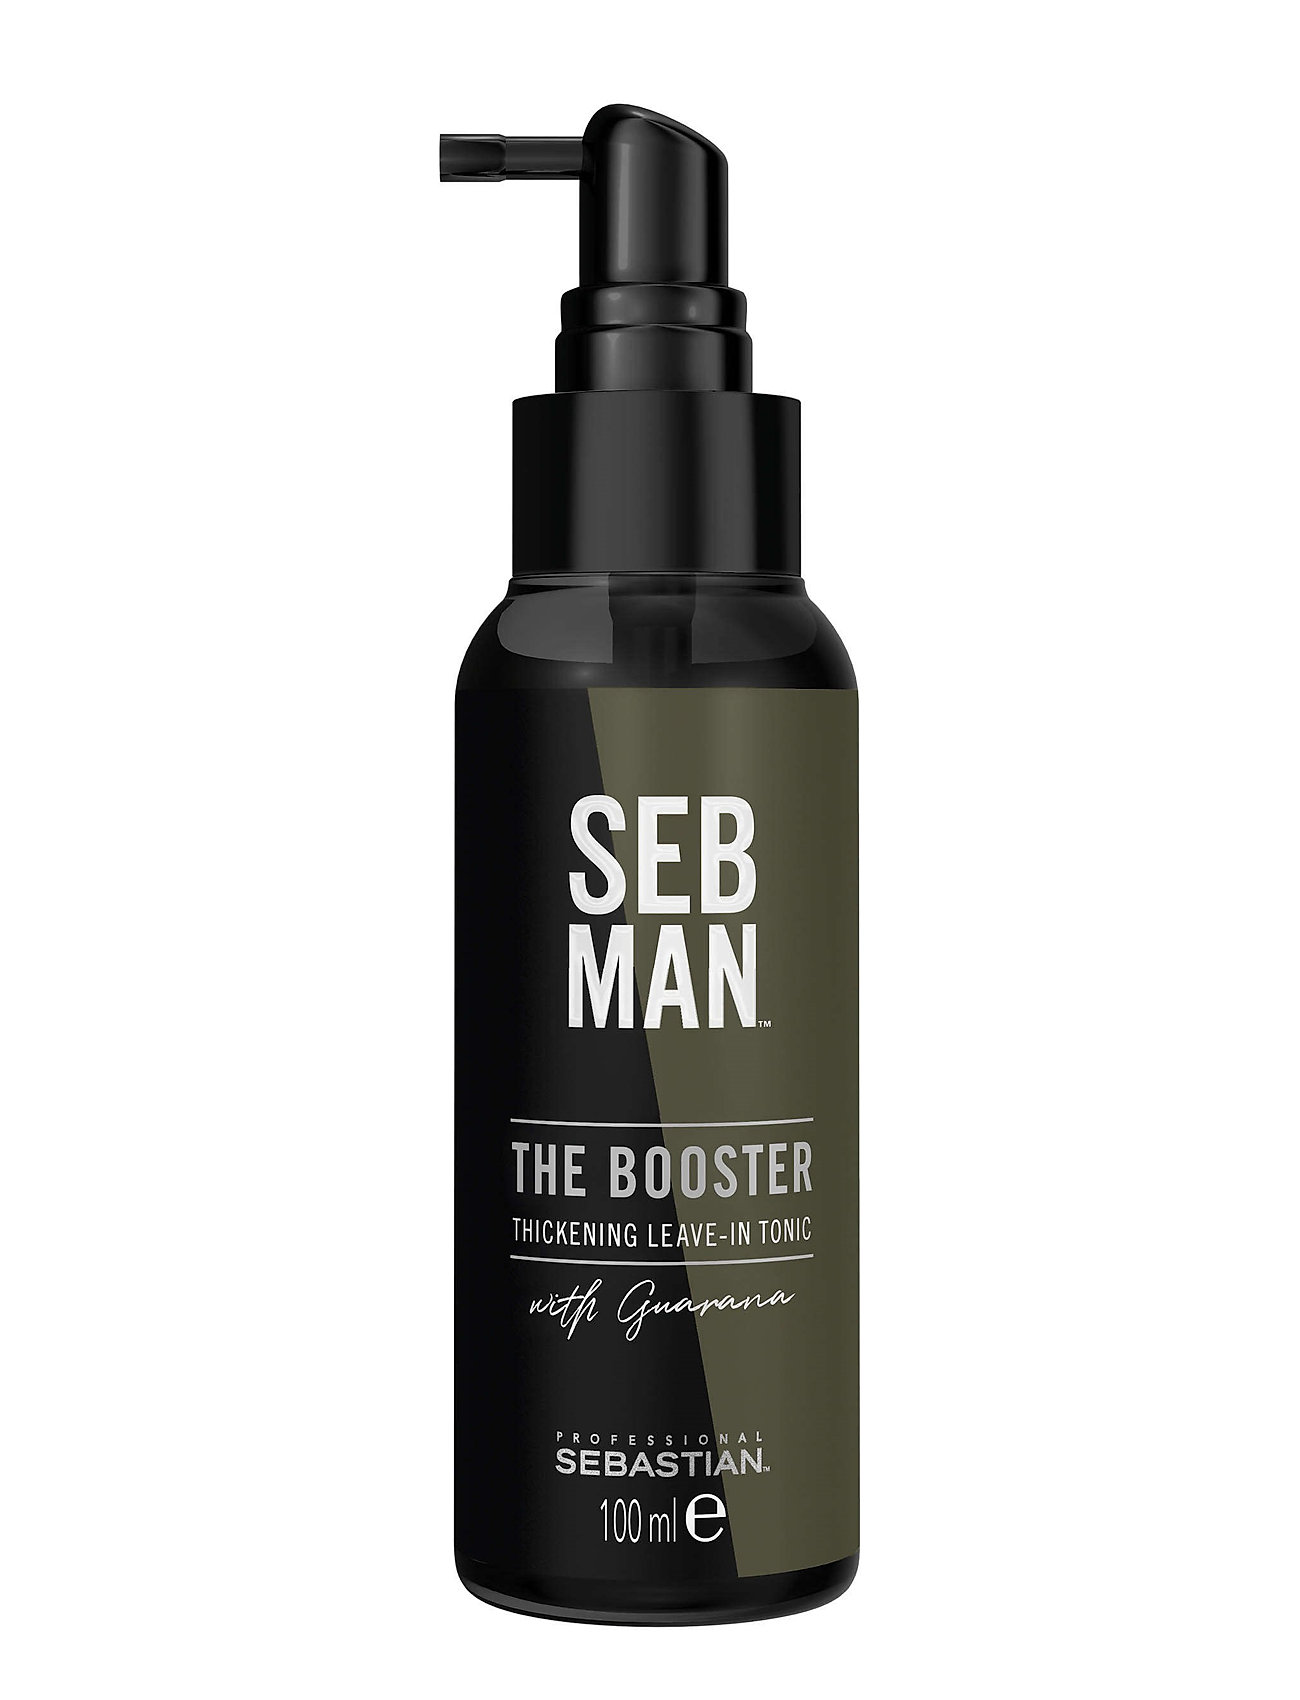 Image of Seb Man The Booster Thickening Leave-In Tonic 100ml Hårbehandling Nude Sebastian Professional (3406309857)